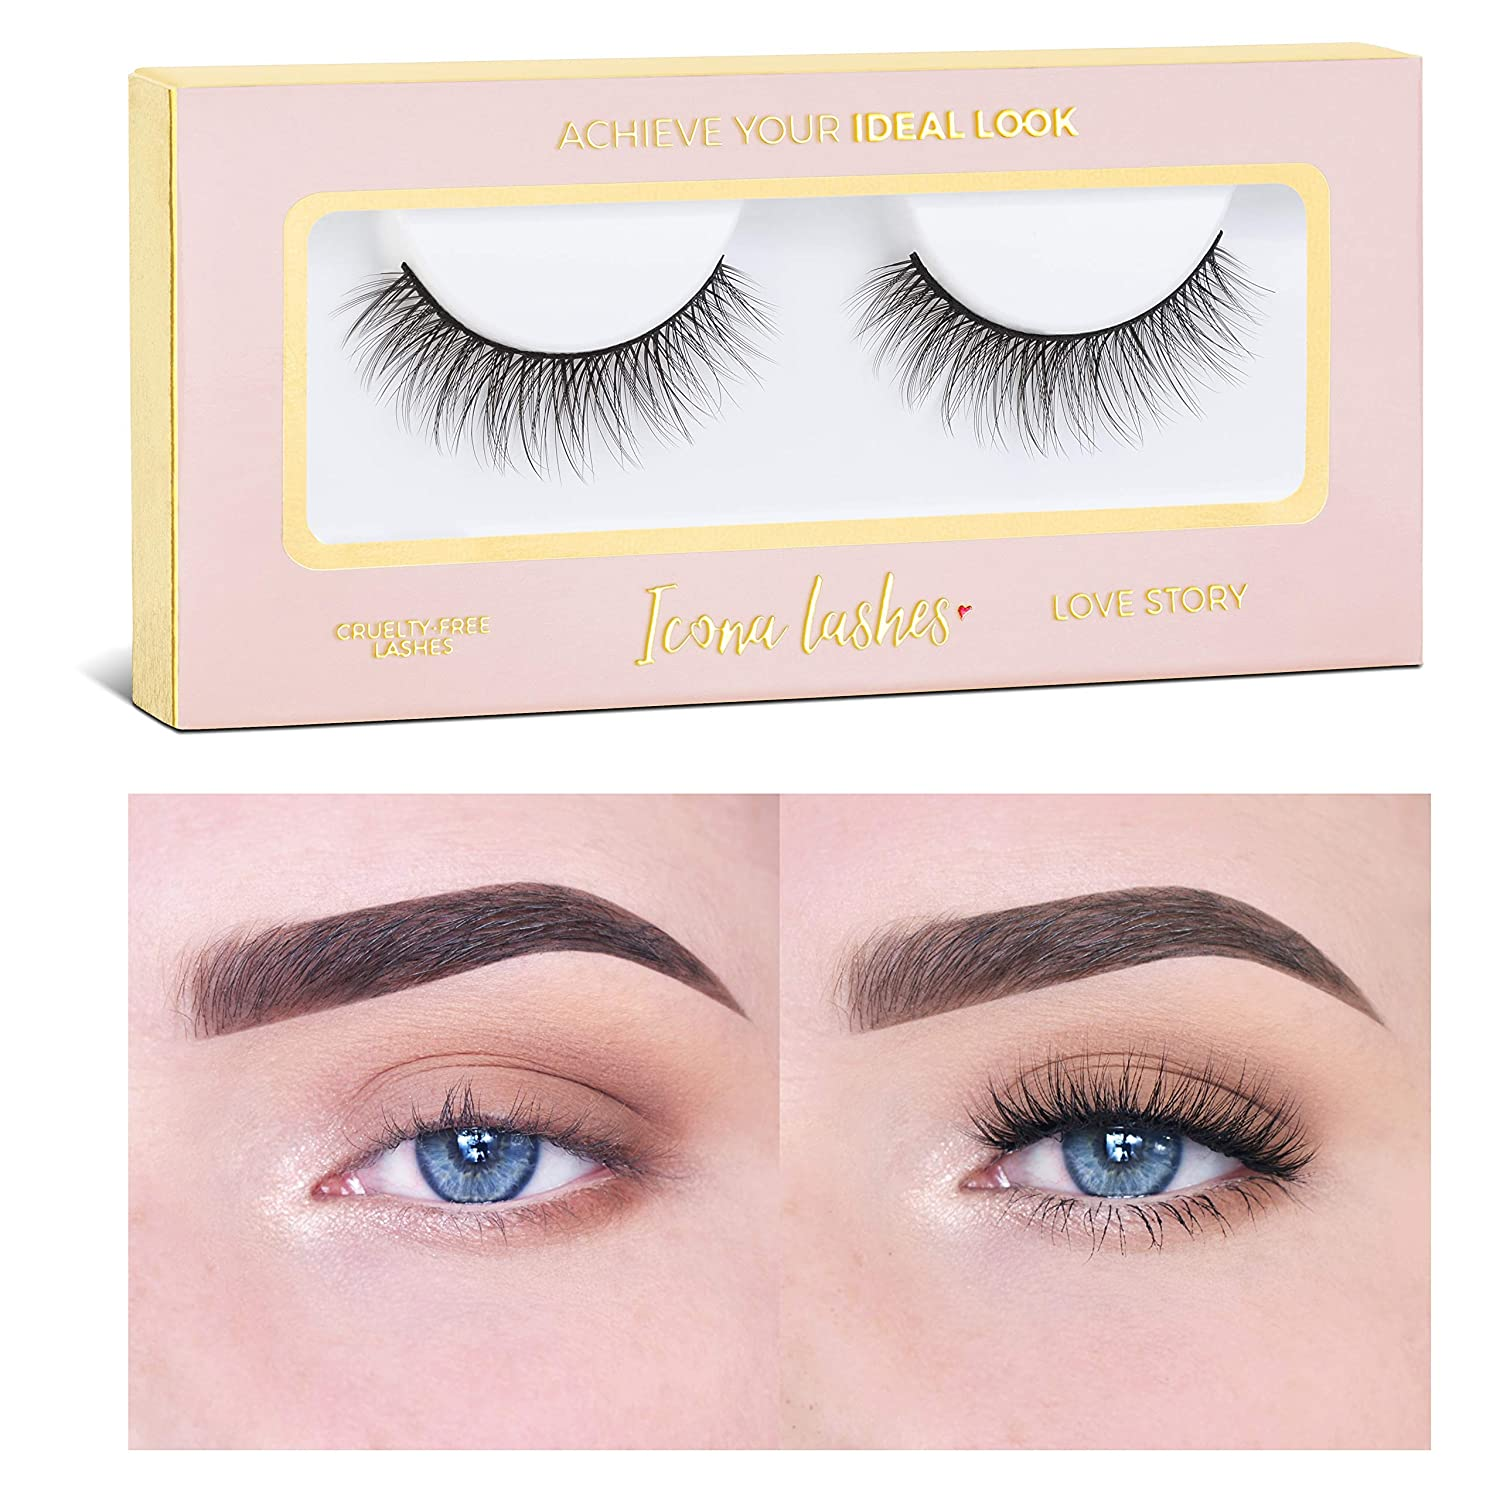 52966cc3290 Amazon.com : Icona Lashes Premium Quality False Eyelashes | Love ...